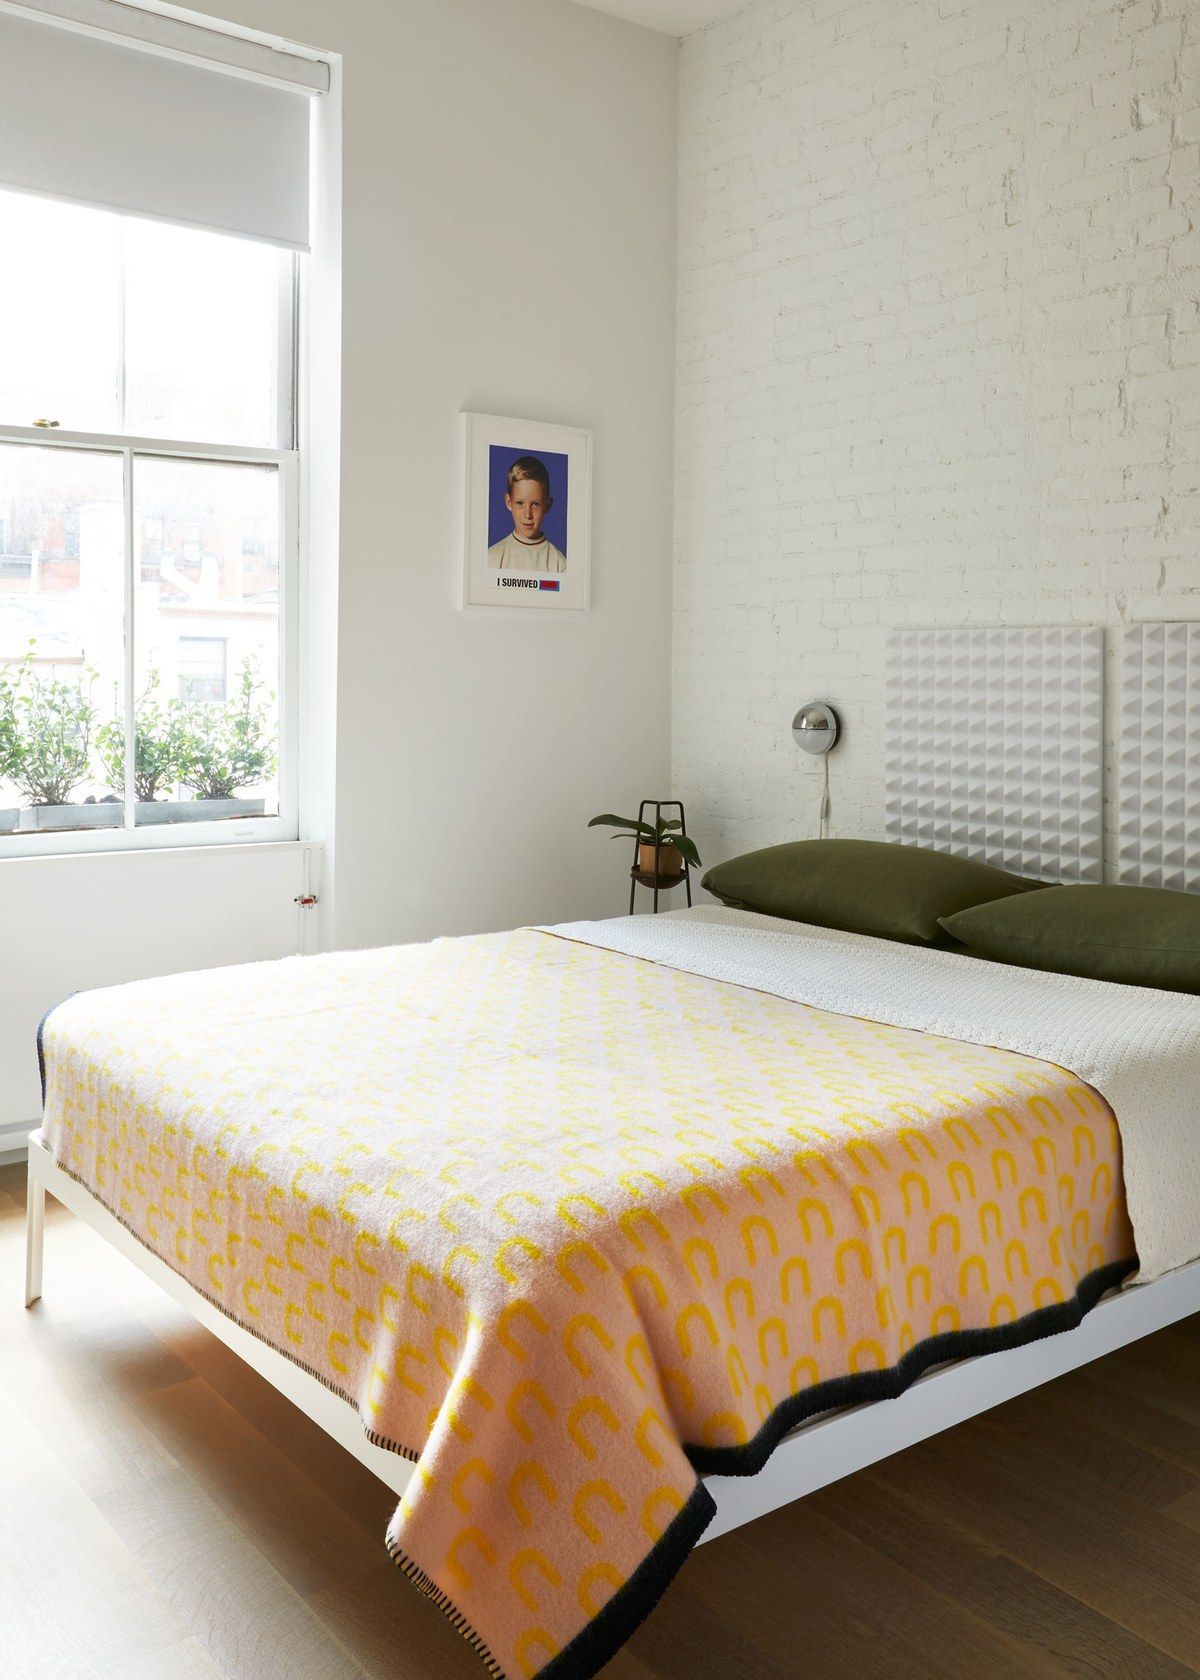 13 Things You Can Use as a Headboard images